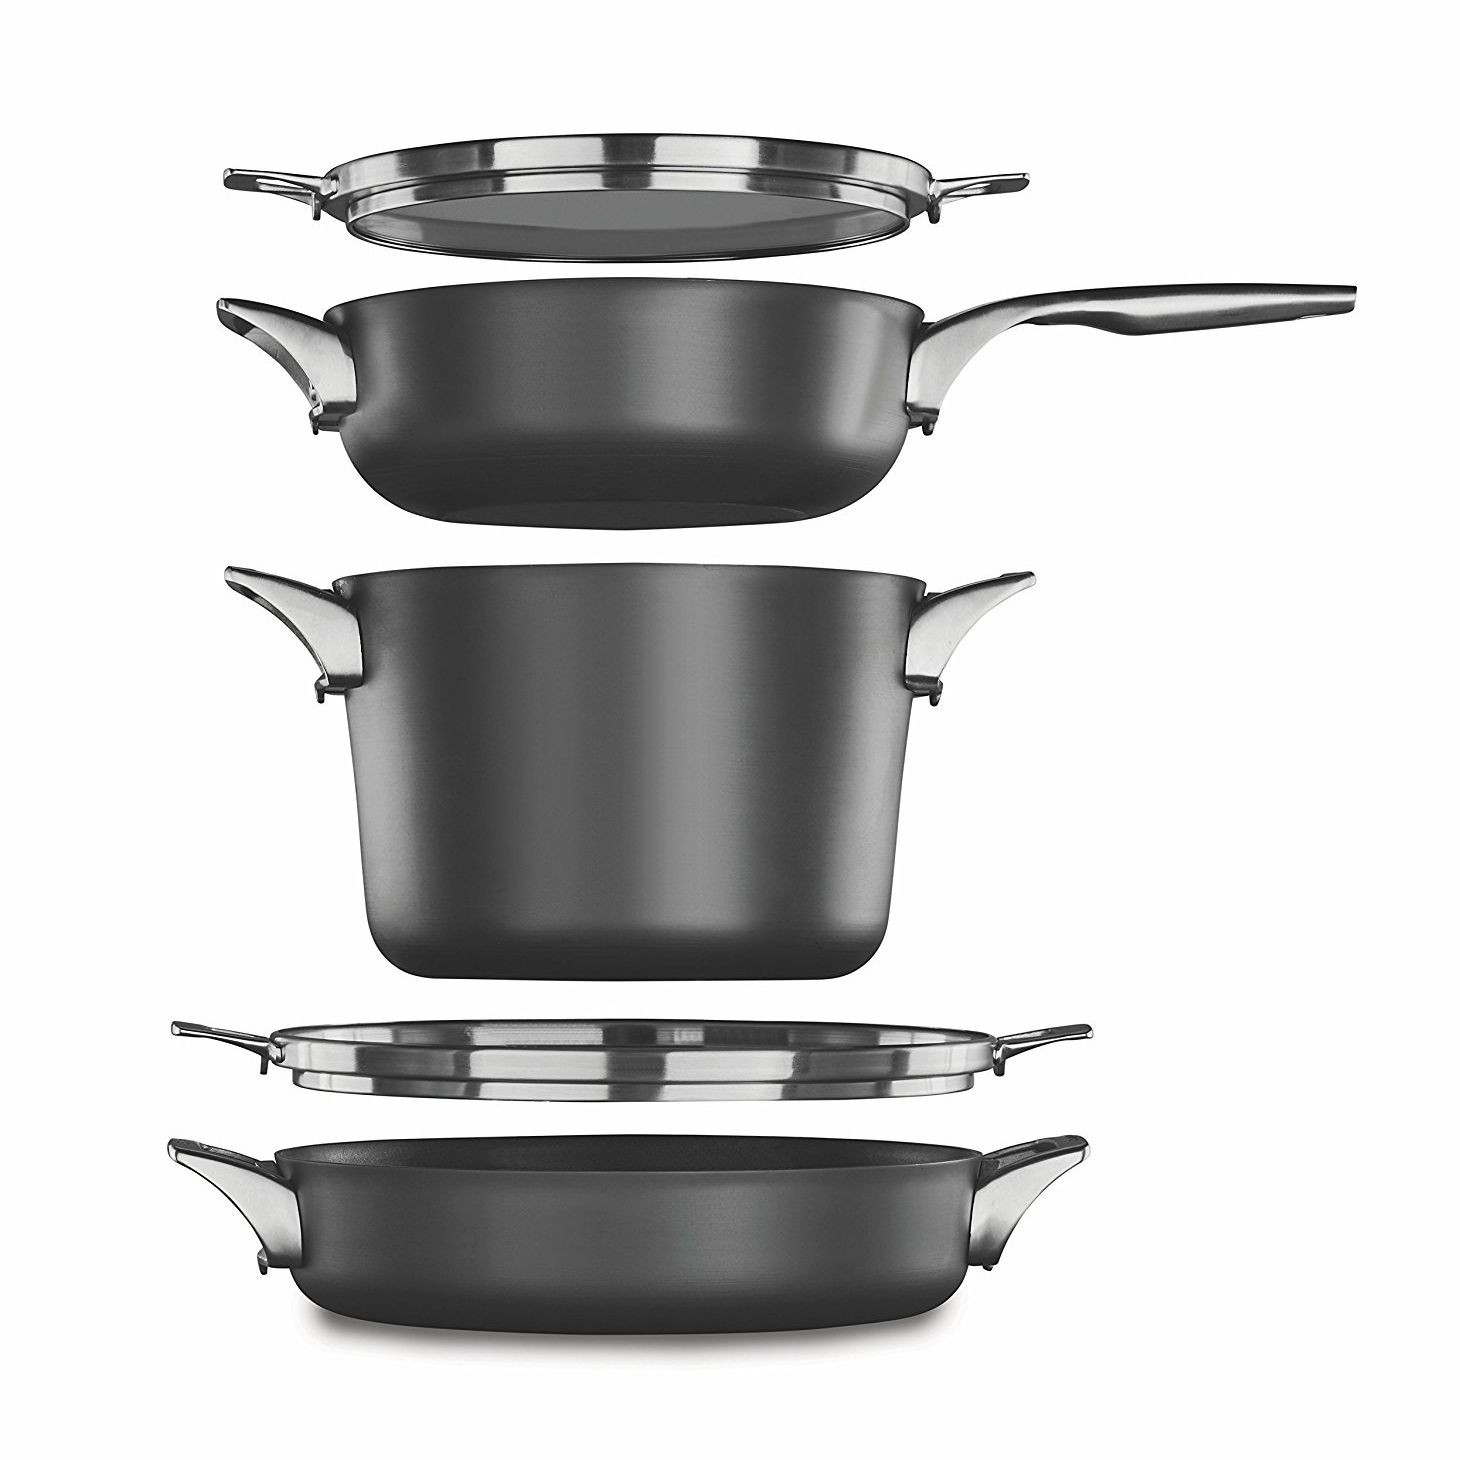 10 Great Cooking Sets for Your Kitchen